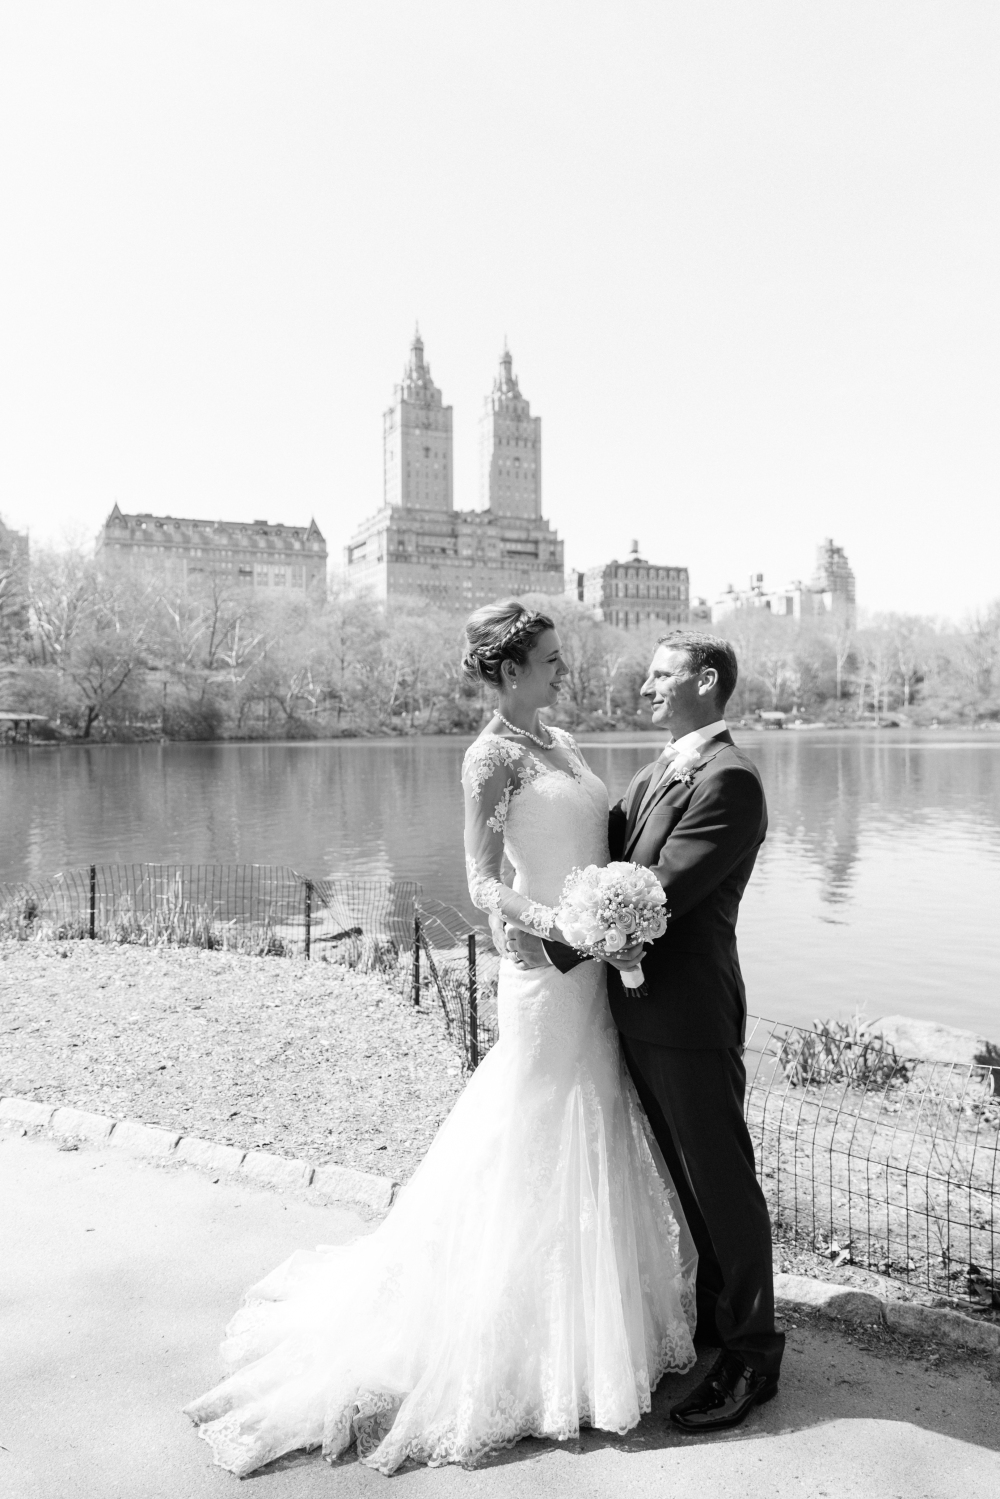 Wagner-cove-central-park-wedding-SS-217